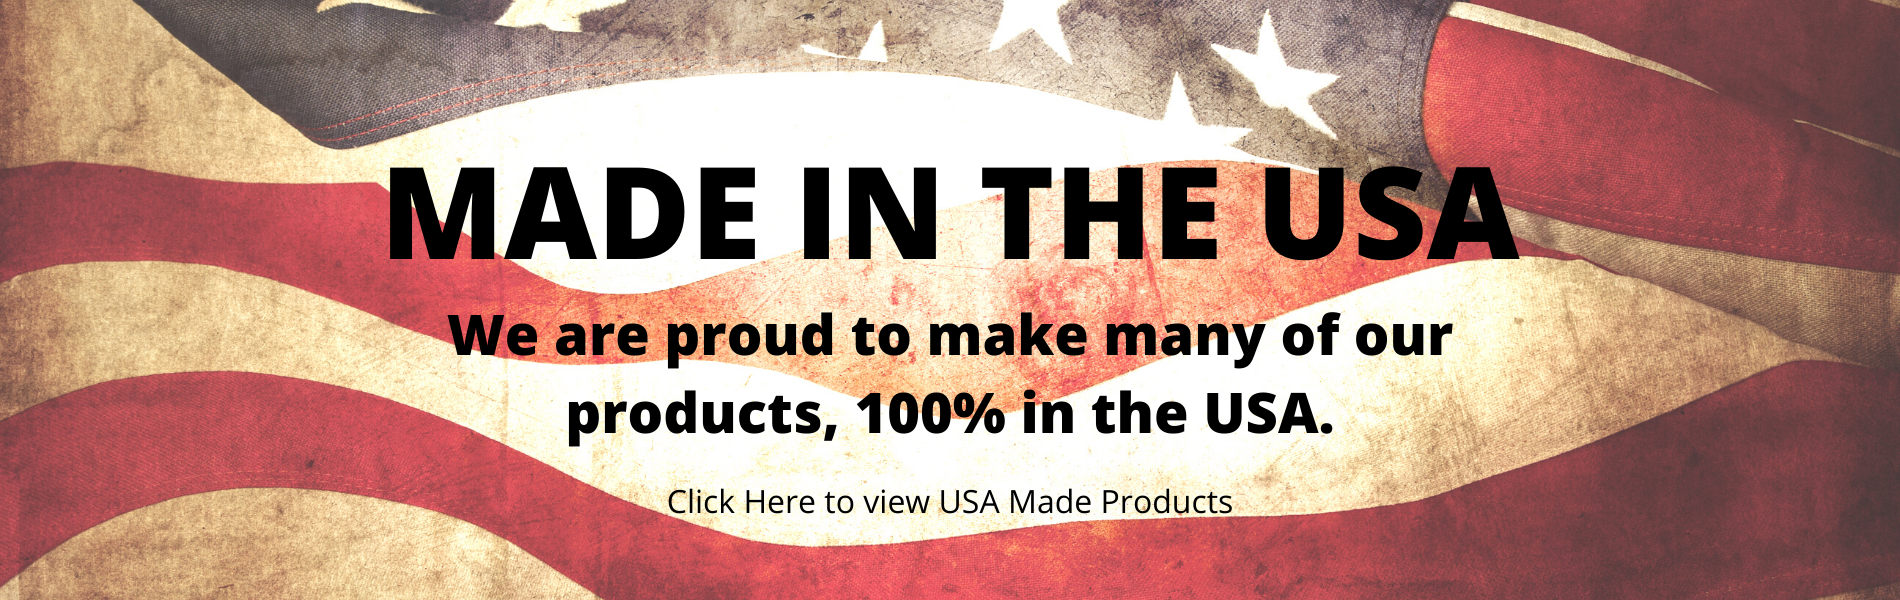 MADE IN THE USA (5)